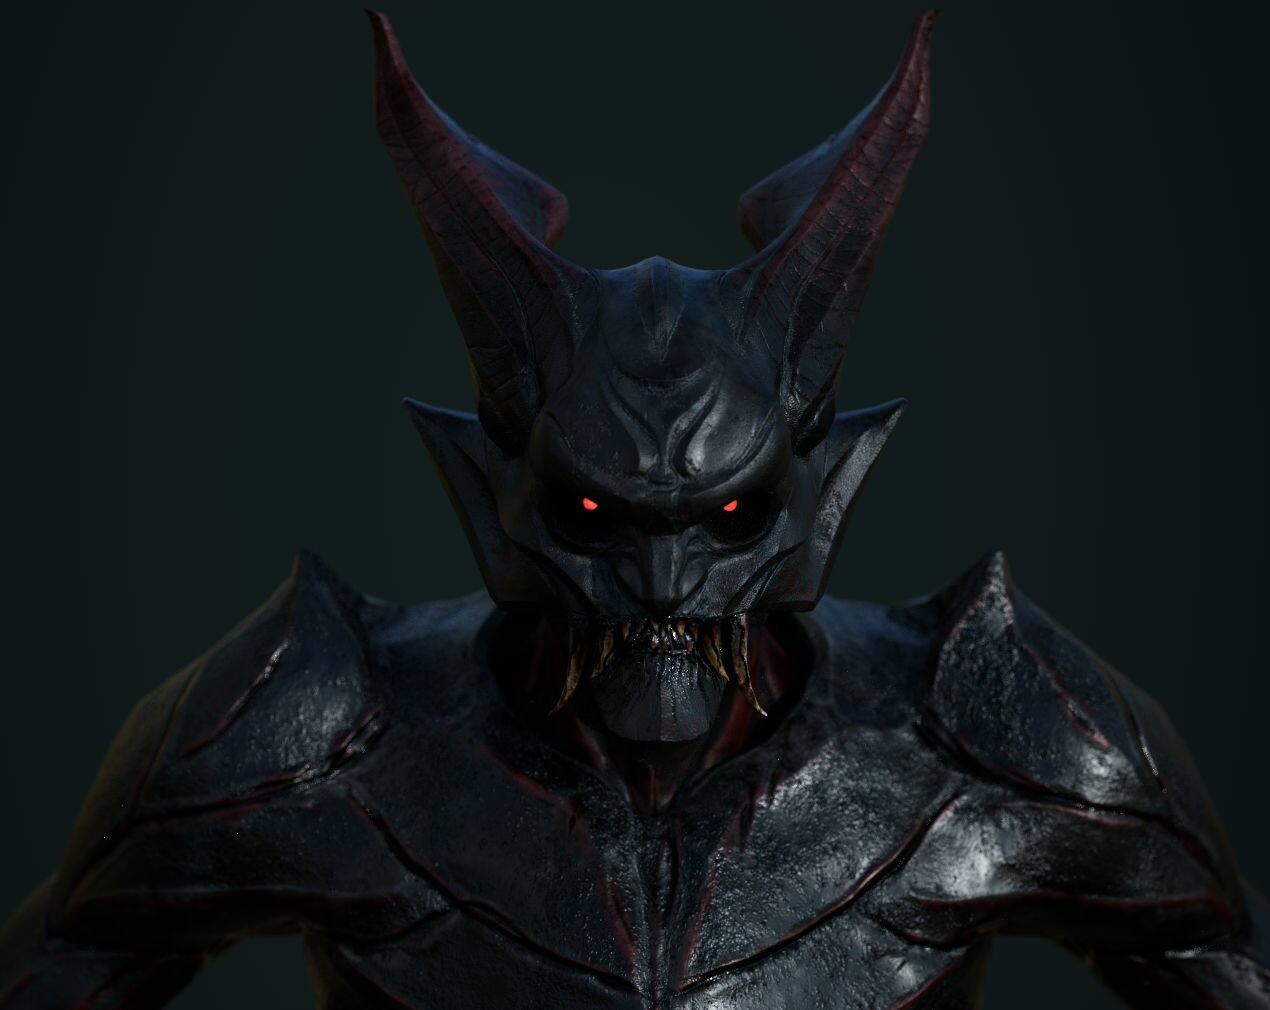 Added some shades of Red to add volume and texture to the devilish look creature.